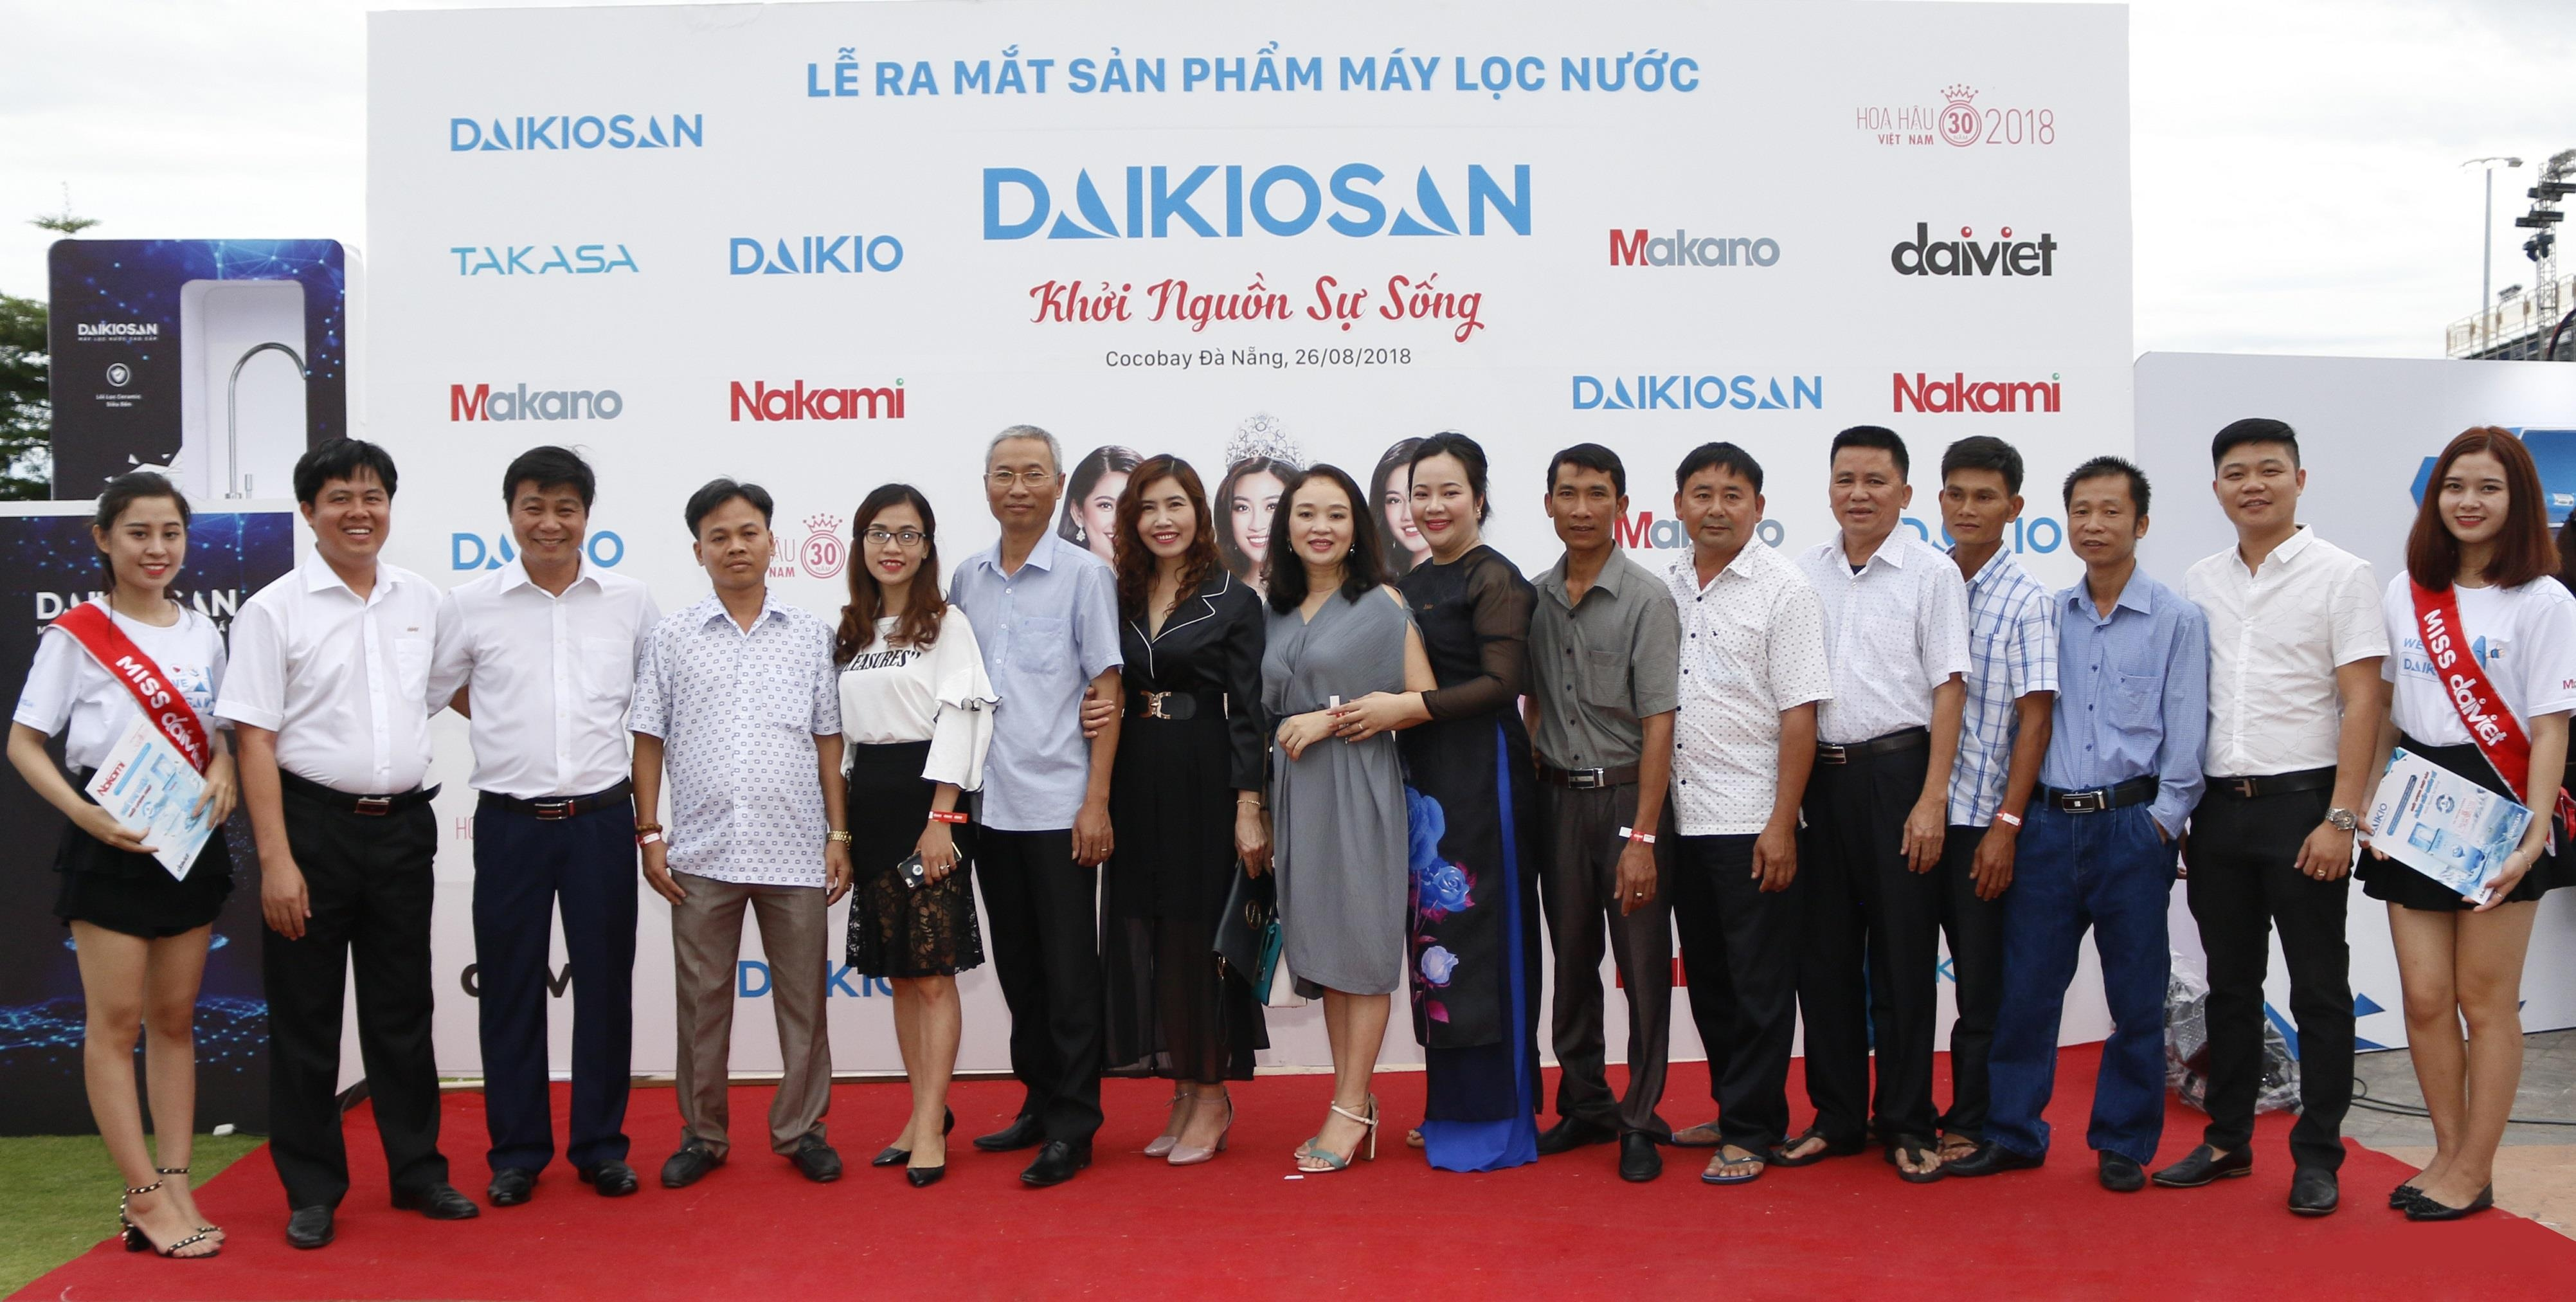 Triet ly 'thoi linh hon, uom cot cach' cua CEO Dai Viet hinh anh 15